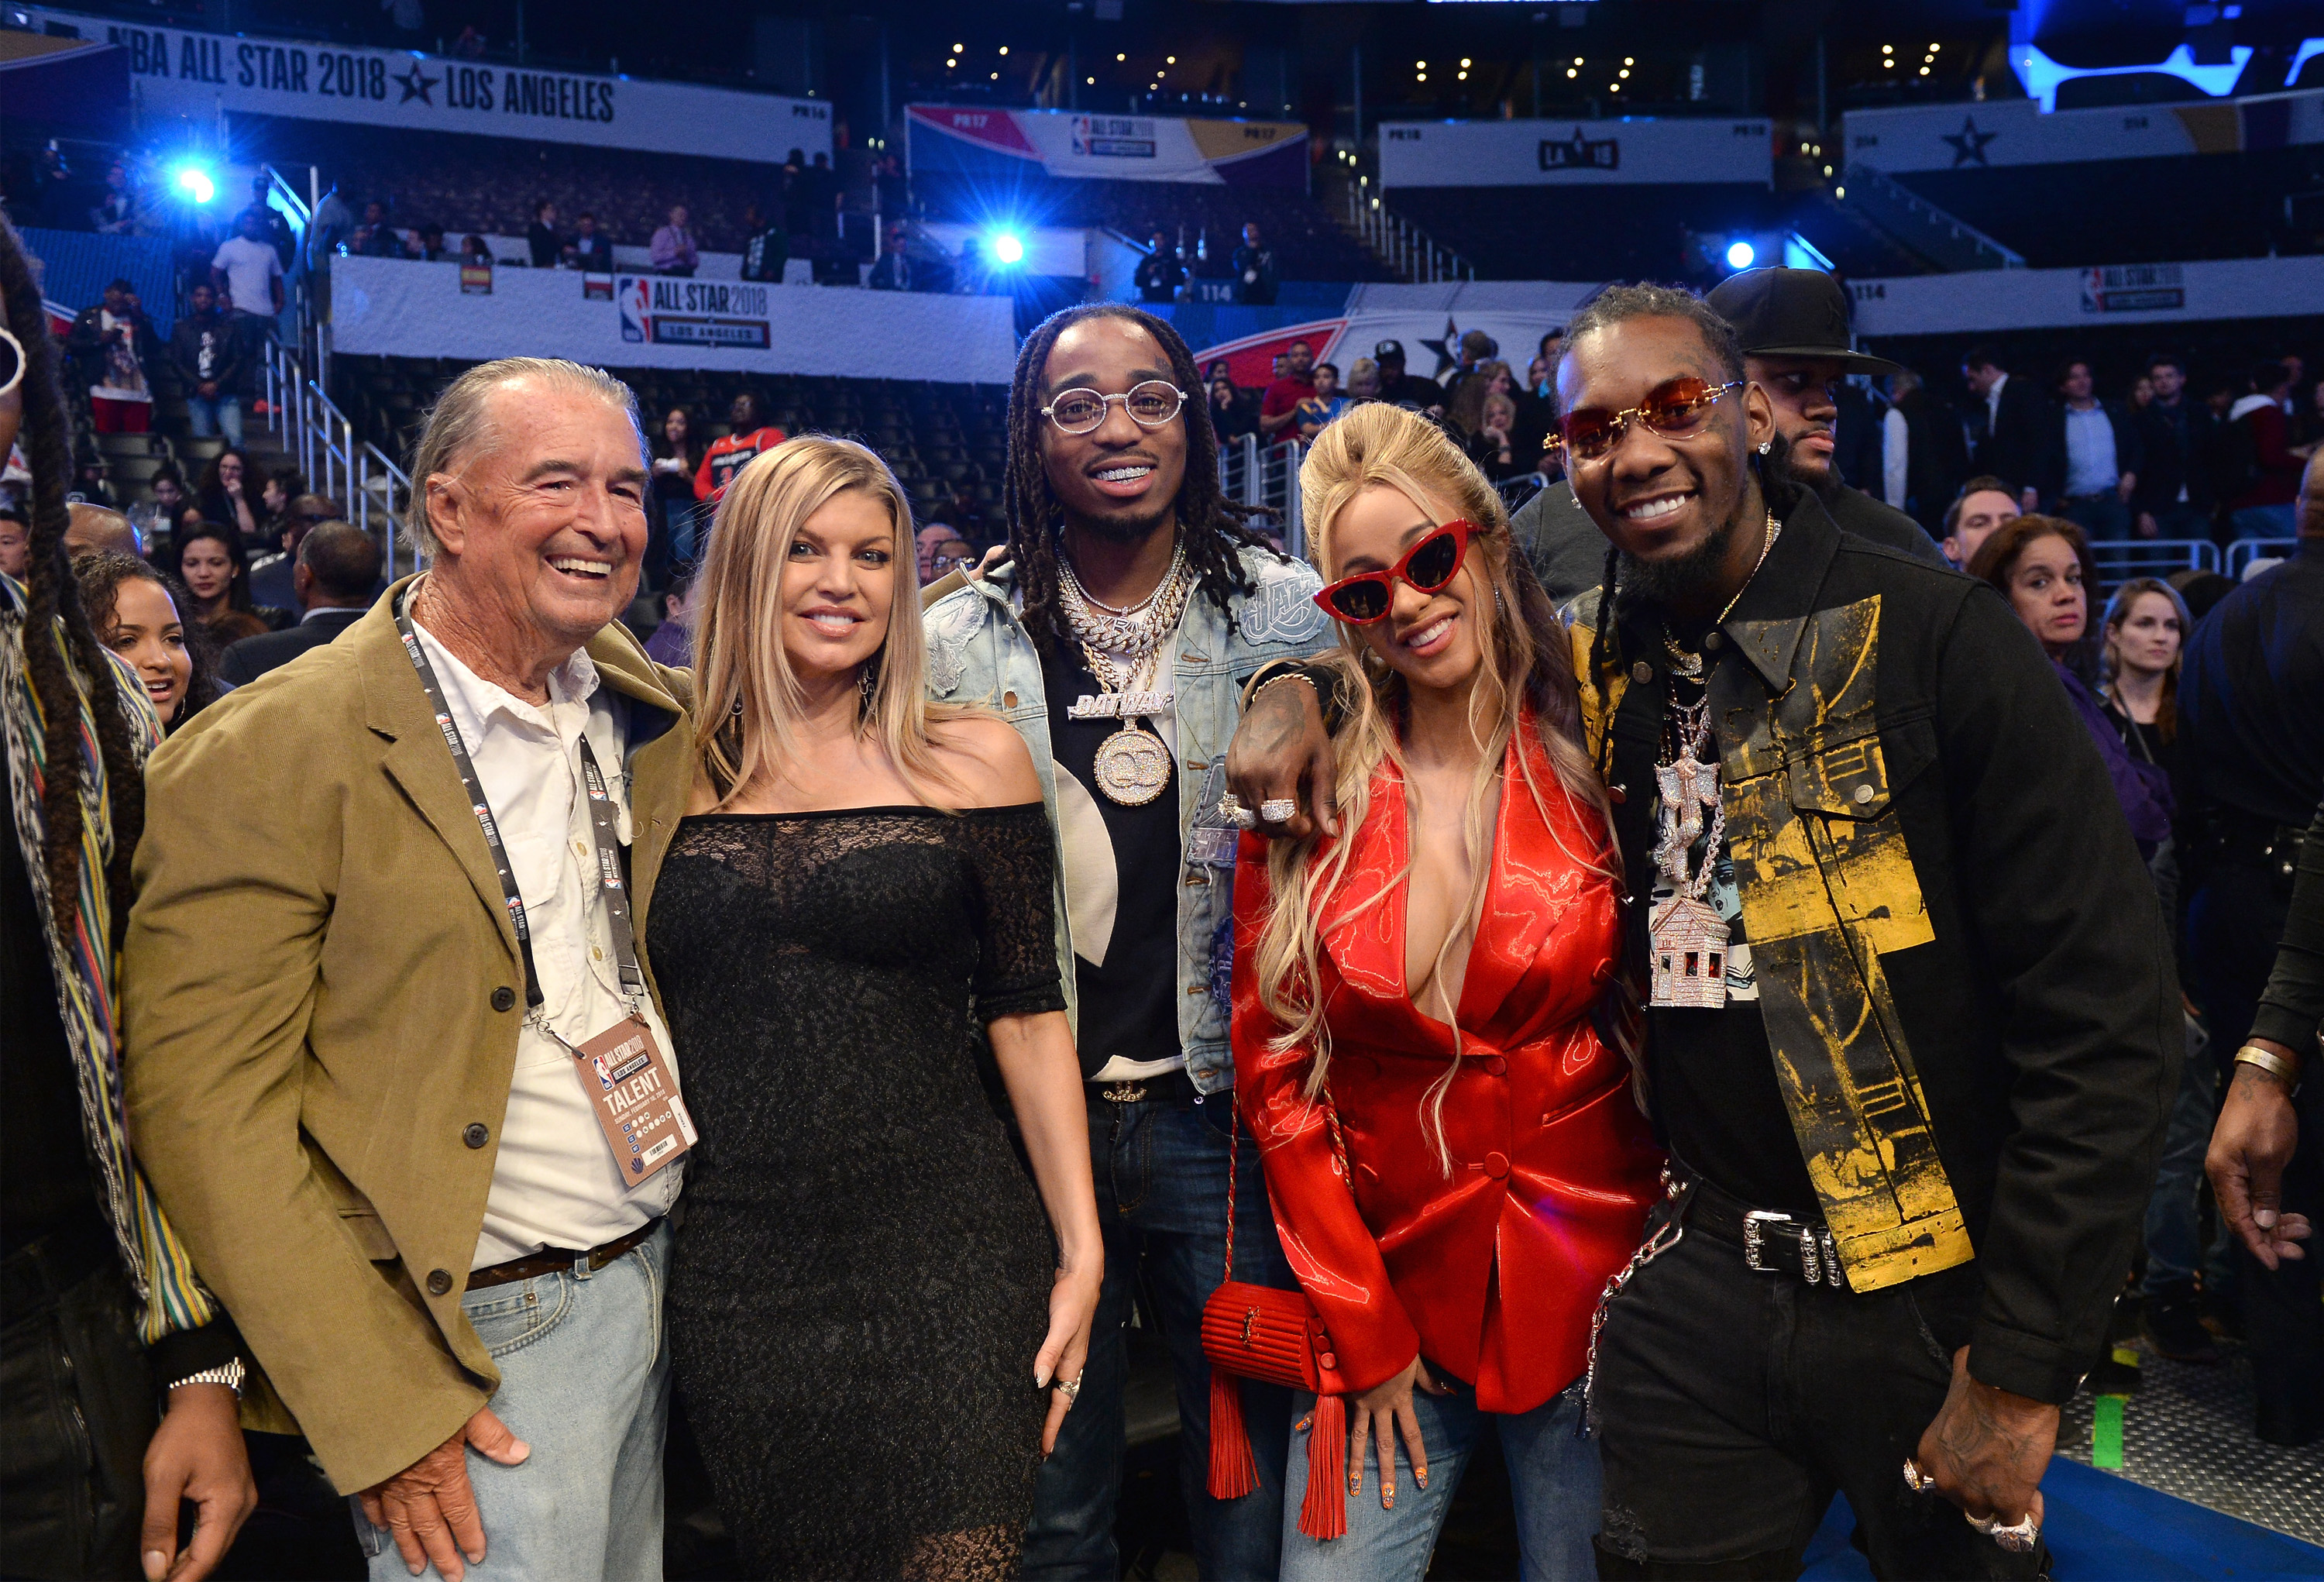 Jon Patrick Ferguson, Fergie, Quavo, Cardi B and Offset attend the NBA All-Star Game 2018 at Staples Center on February 18, 2018 in Los Angeles